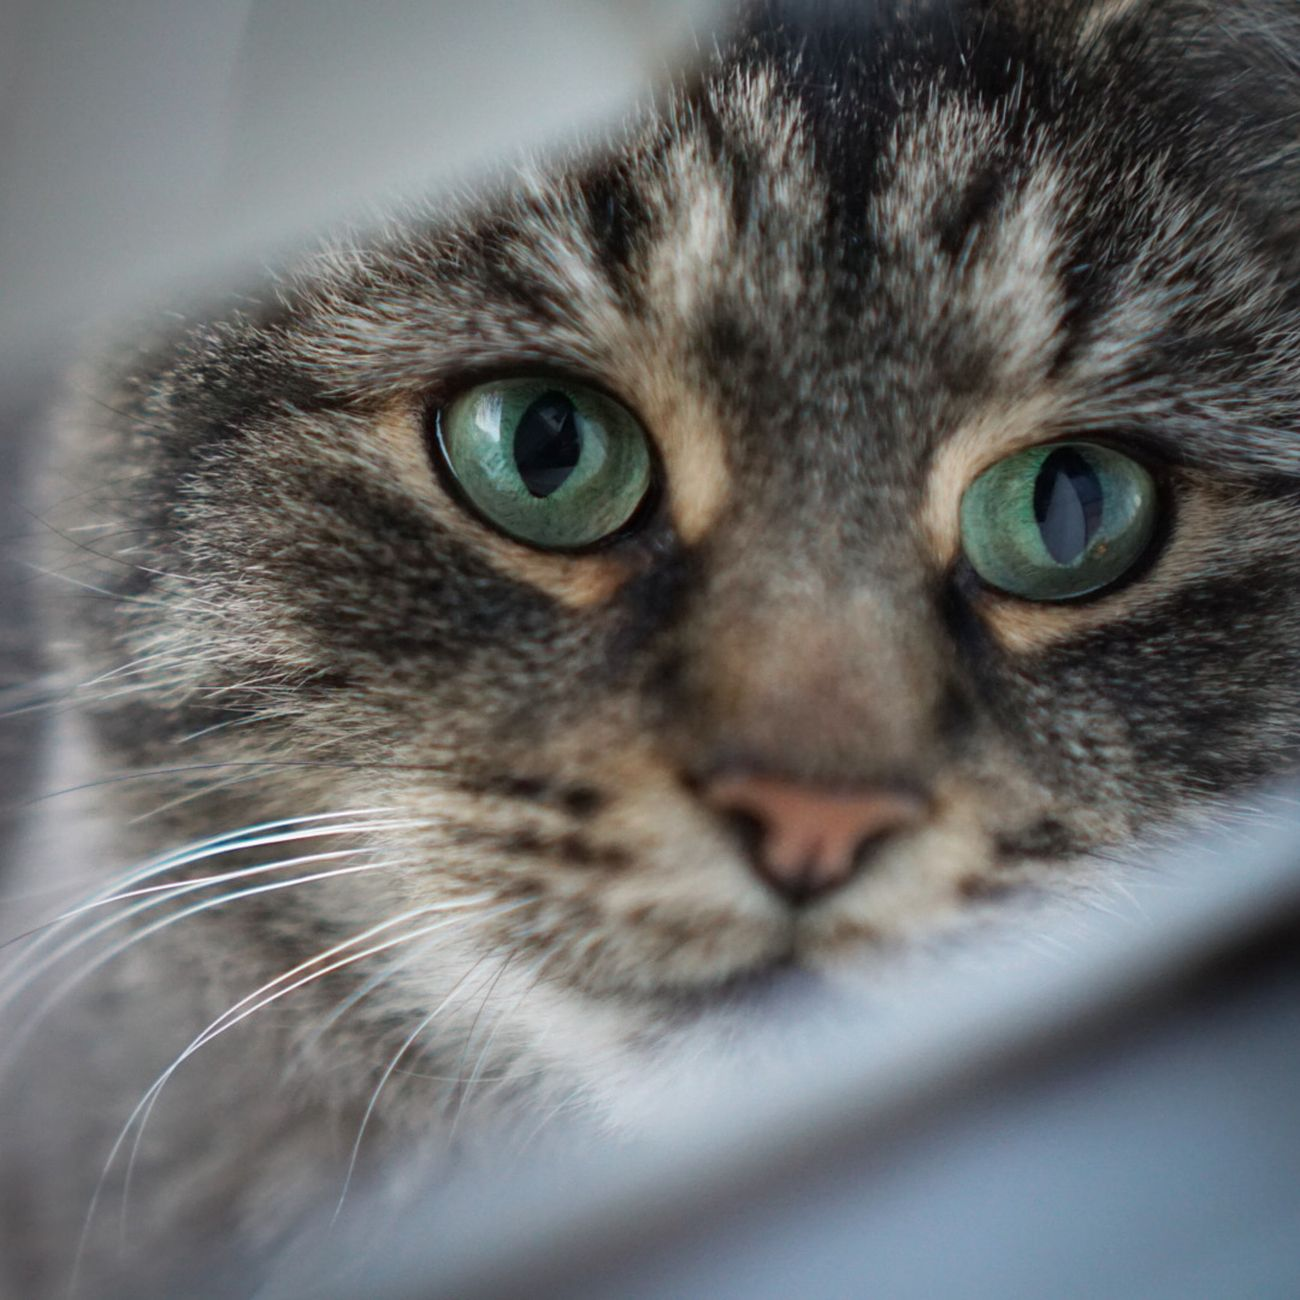 Cat looking through a gap in a window